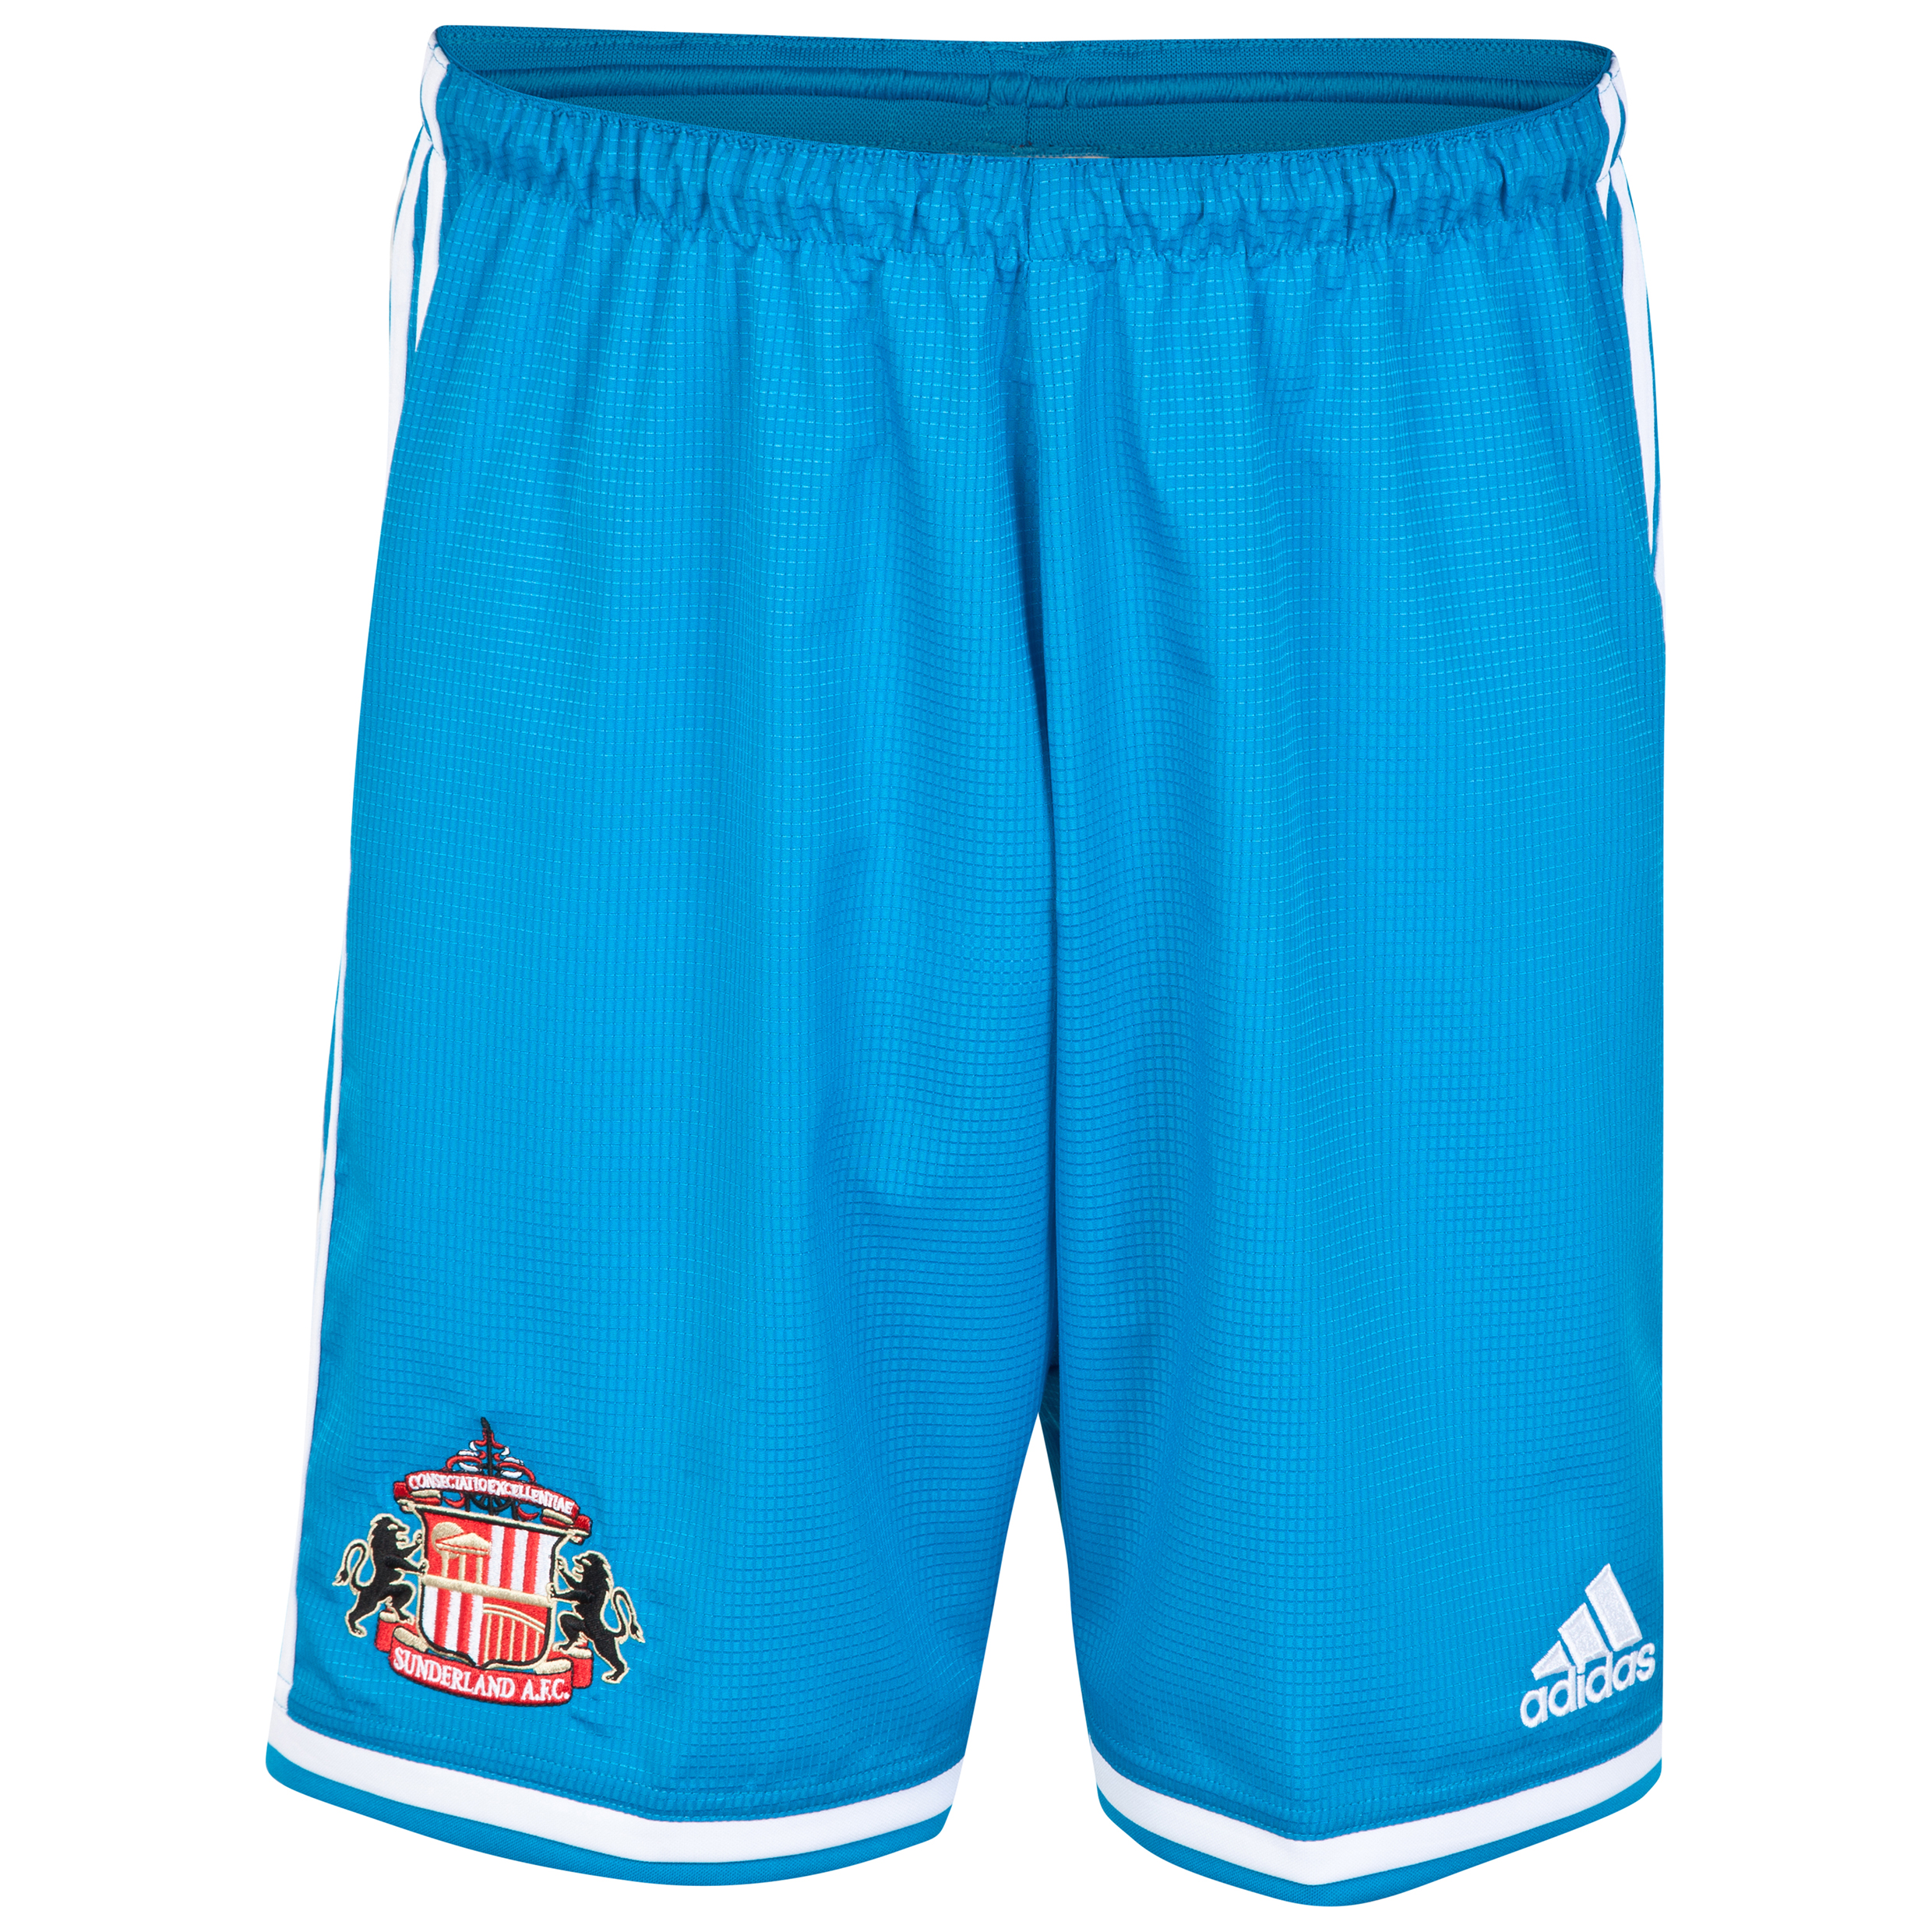 Sunderland Away Short 2014/15 Lt Blue